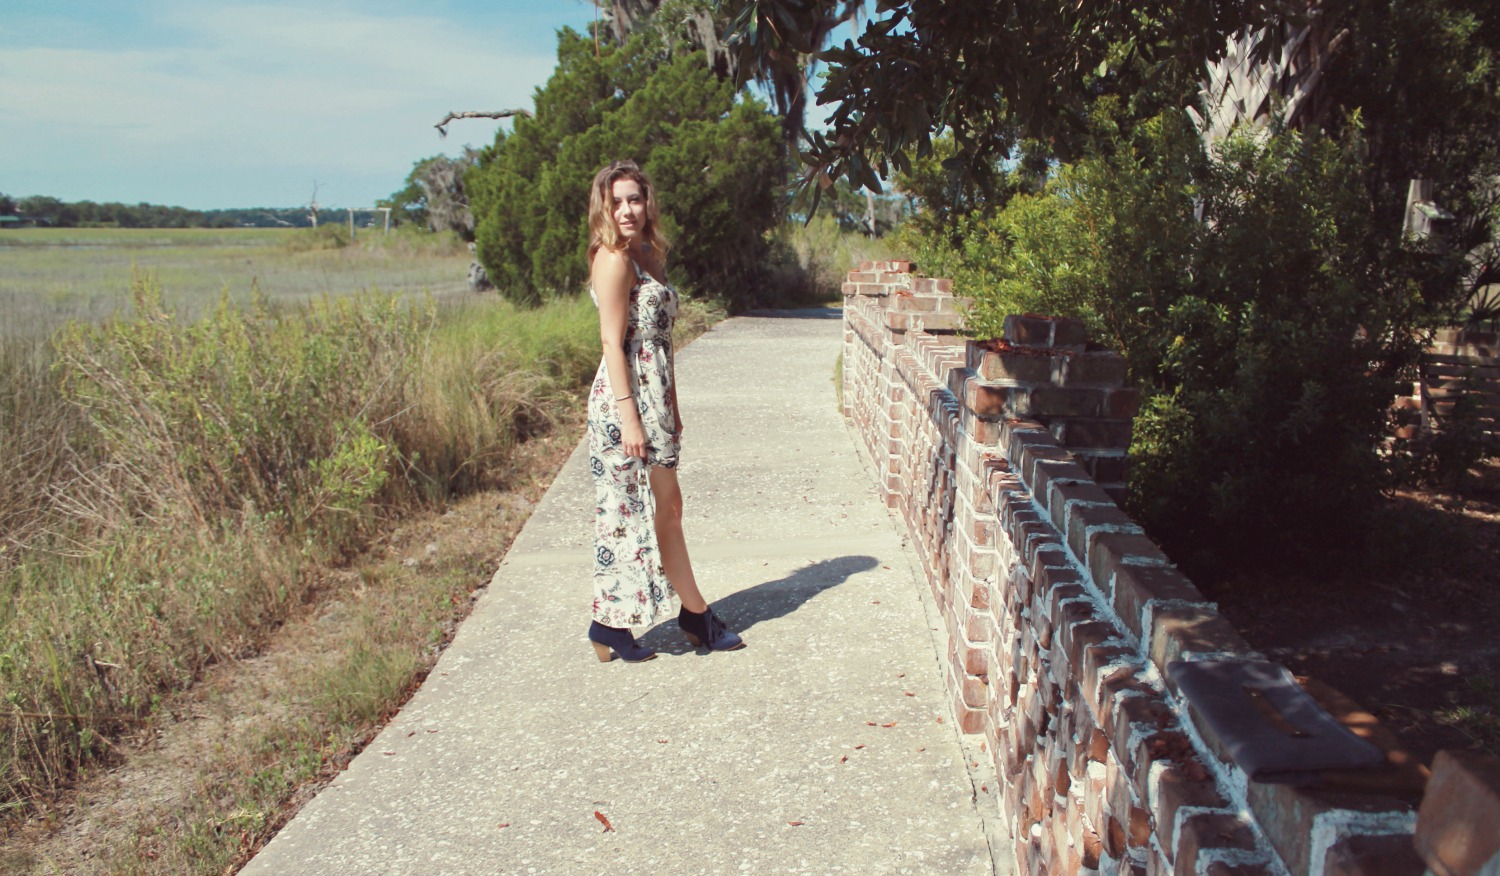 Boone+Owl Floral and Cobalt, floral maxi dress, sole society booties, cobalt booties, maxi dresses, sole society, tassels, maxi dress and booties, blogger fashion, outfit of the day, what i wore, boone and owl